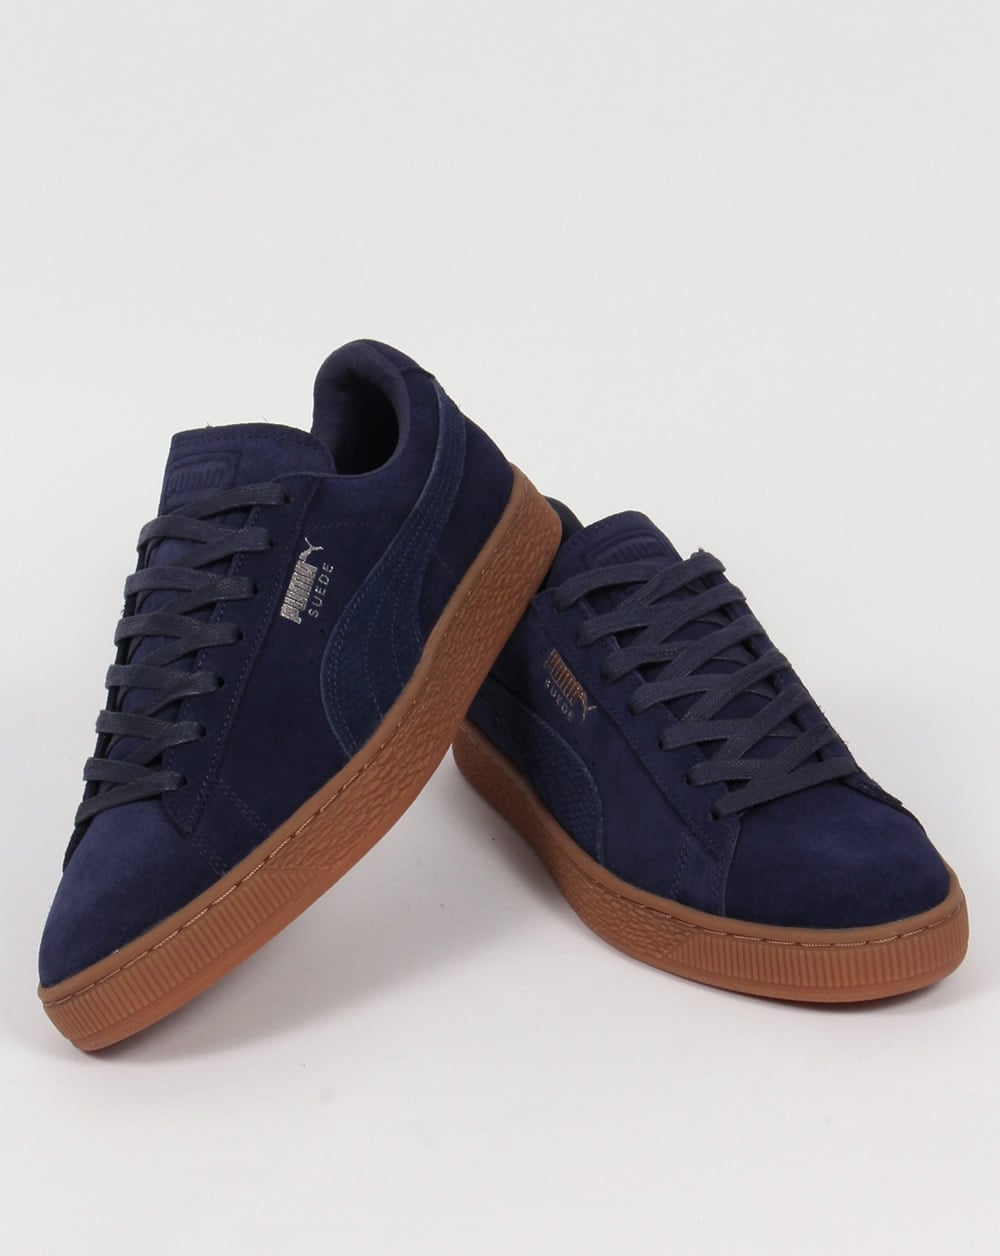 puma suede citi trainers navy shoes sneakers classic mens. Black Bedroom Furniture Sets. Home Design Ideas